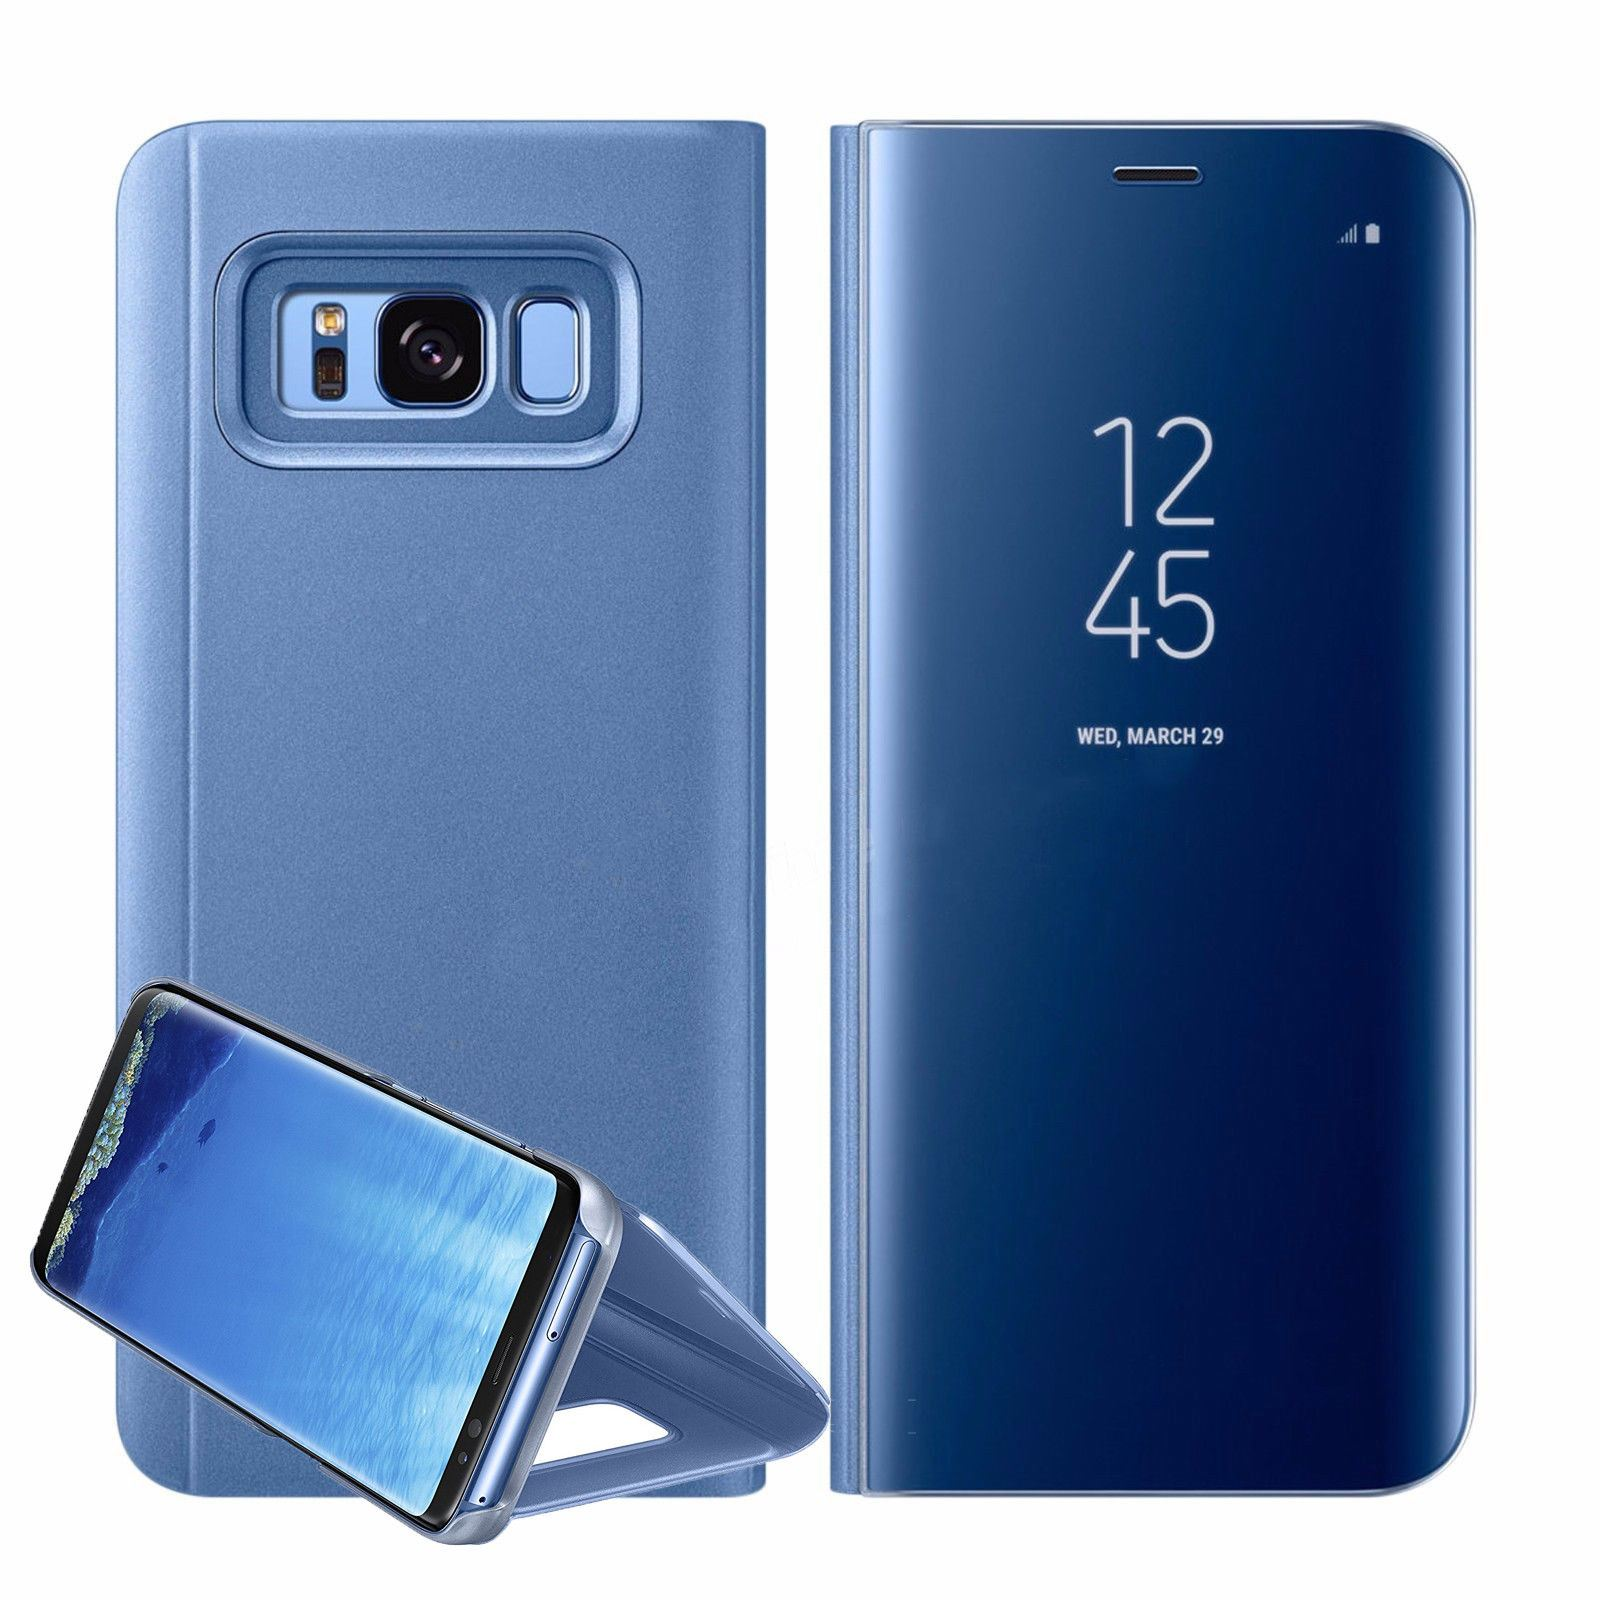 New-Samsung-Galaxy-S8-S9-S10-Smart-View-Mirror-Leather-Flip-Stand-Case-Cover miniatuur 36